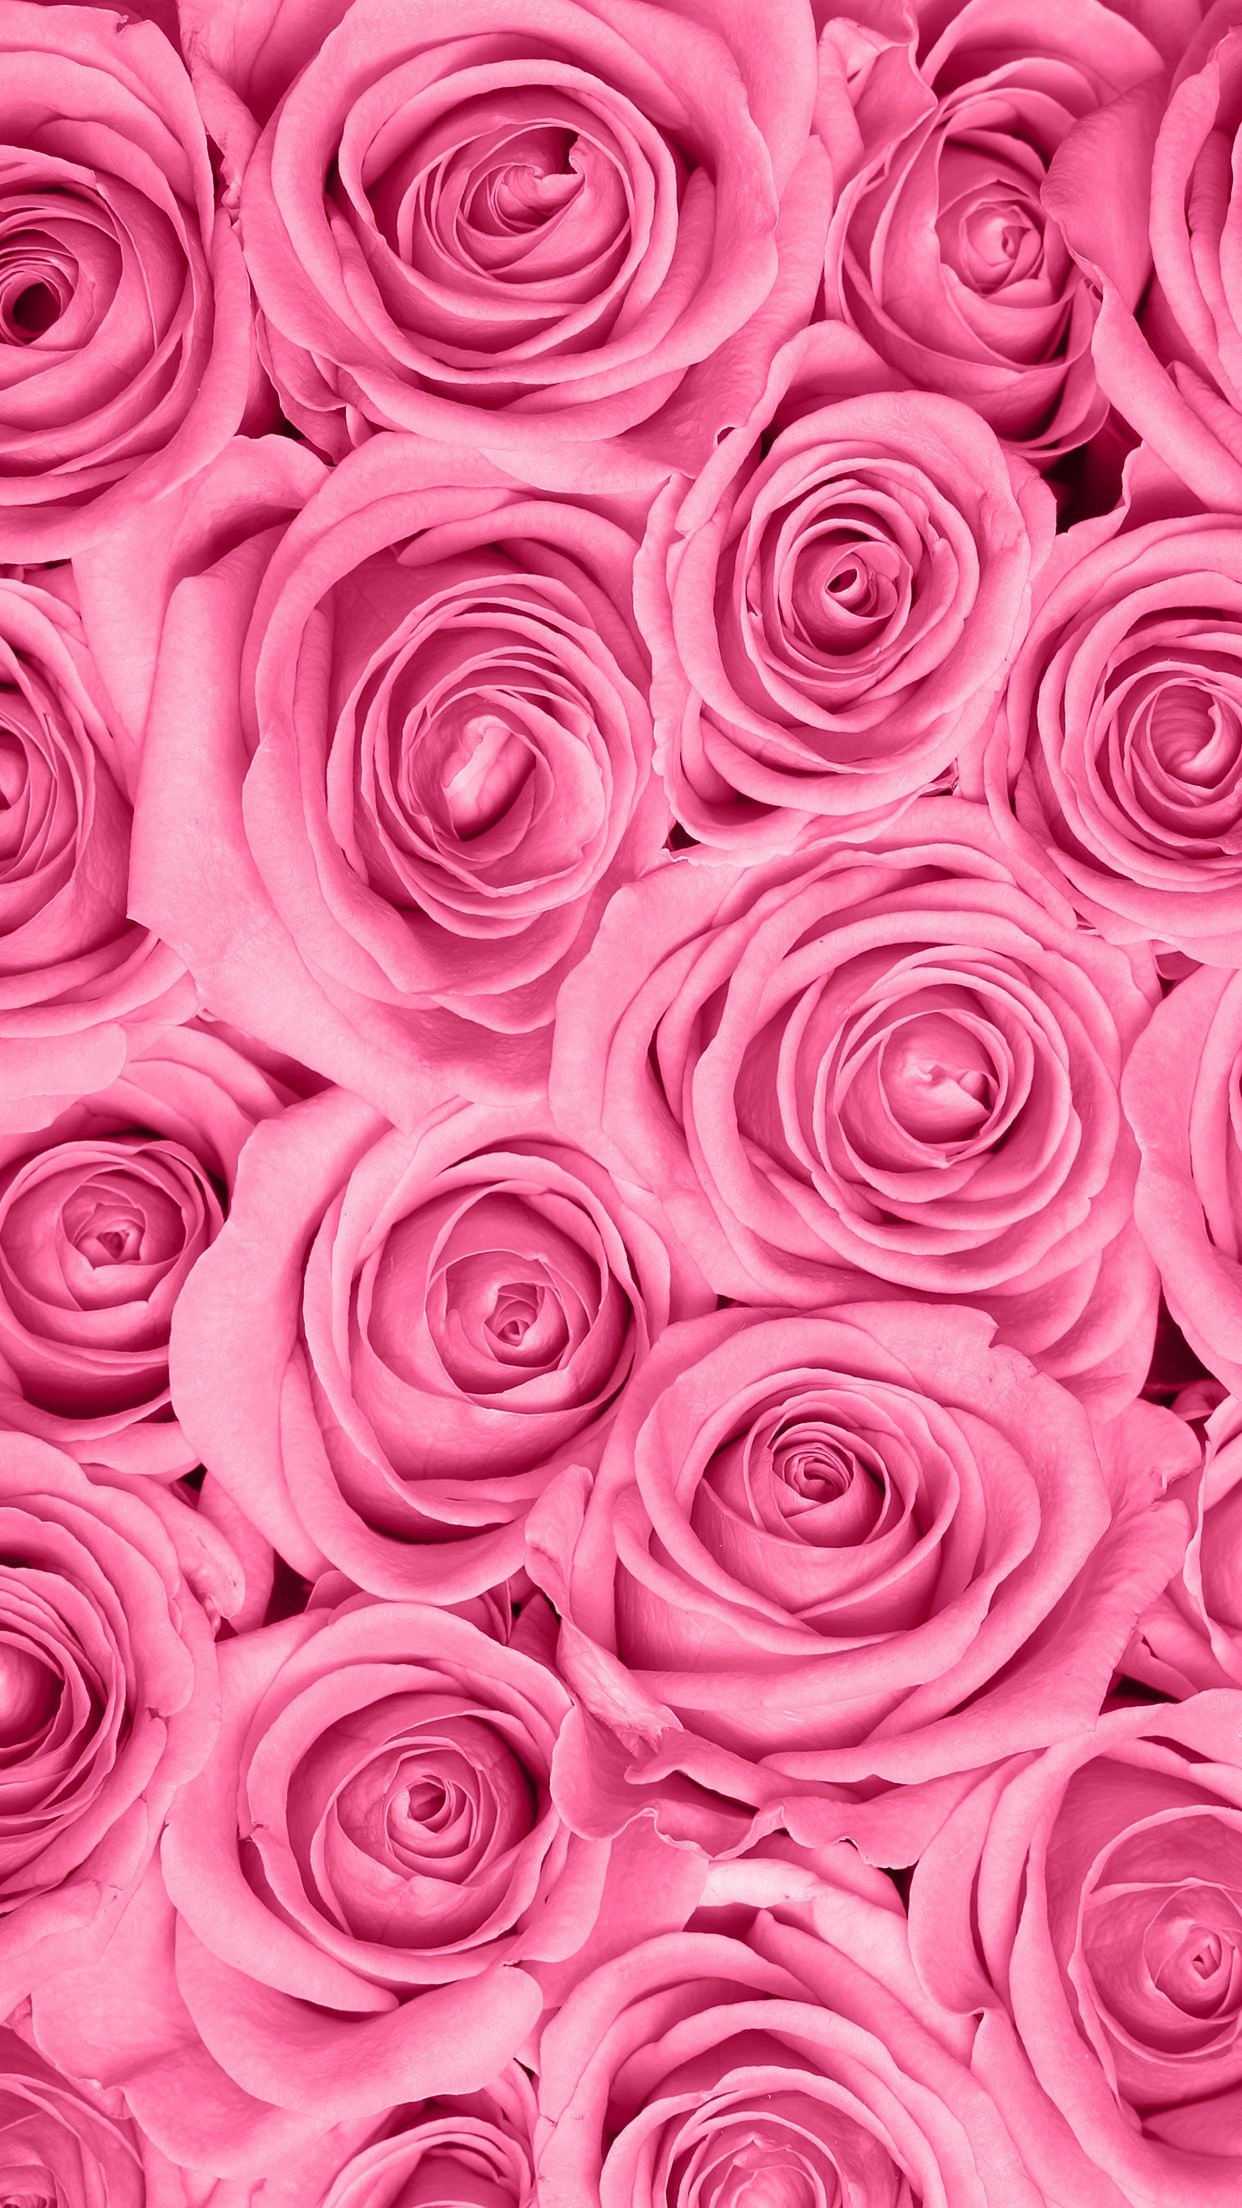 Pink roses wallpaper 64 images - Pink rose hd wallpaper for mobile ...